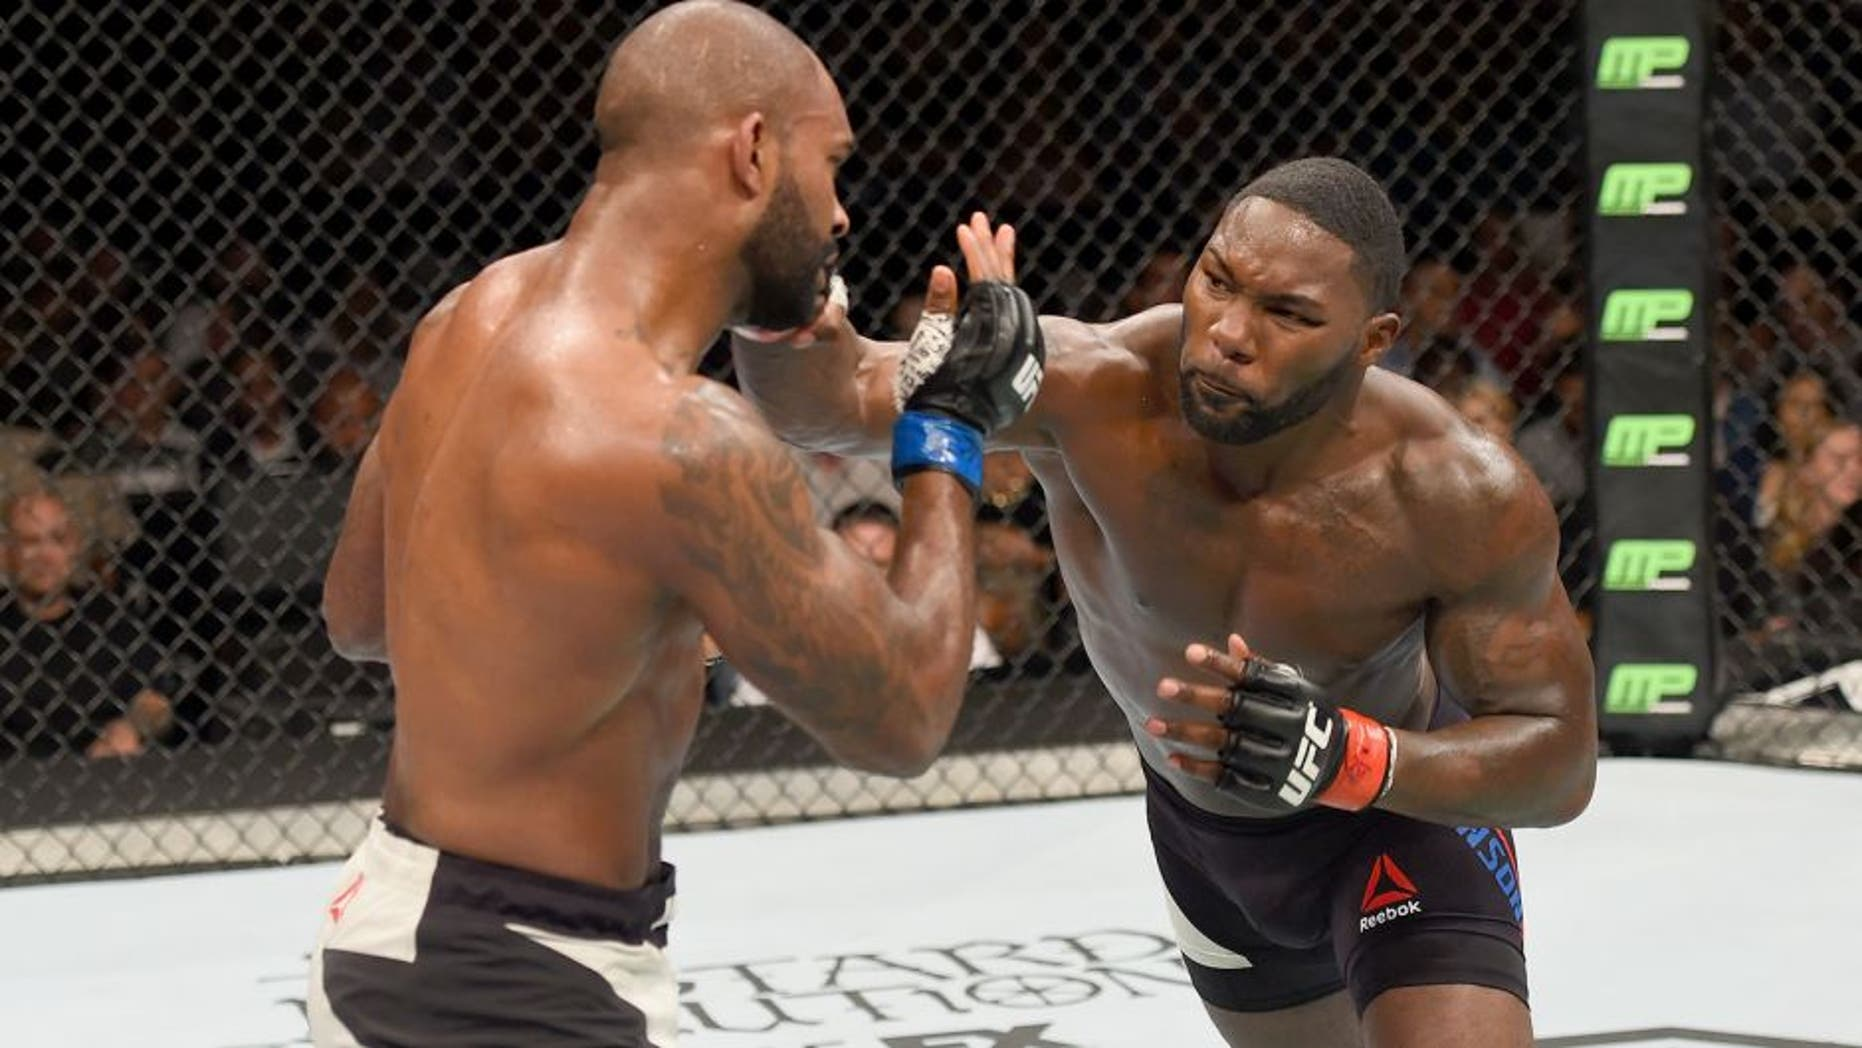 LAS VEGAS, NV - SEPTEMBER 05: (R-L) Anthony Johnson punches Jimi Manuwa in their light heavyweight bout during the UFC 191 event inside MGM Grand Garden Arena on September 5, 2015 in Las Vegas, Nevada. (Photo by Josh Hedges/Zuffa LLC/Zuffa LLC via Getty Images)